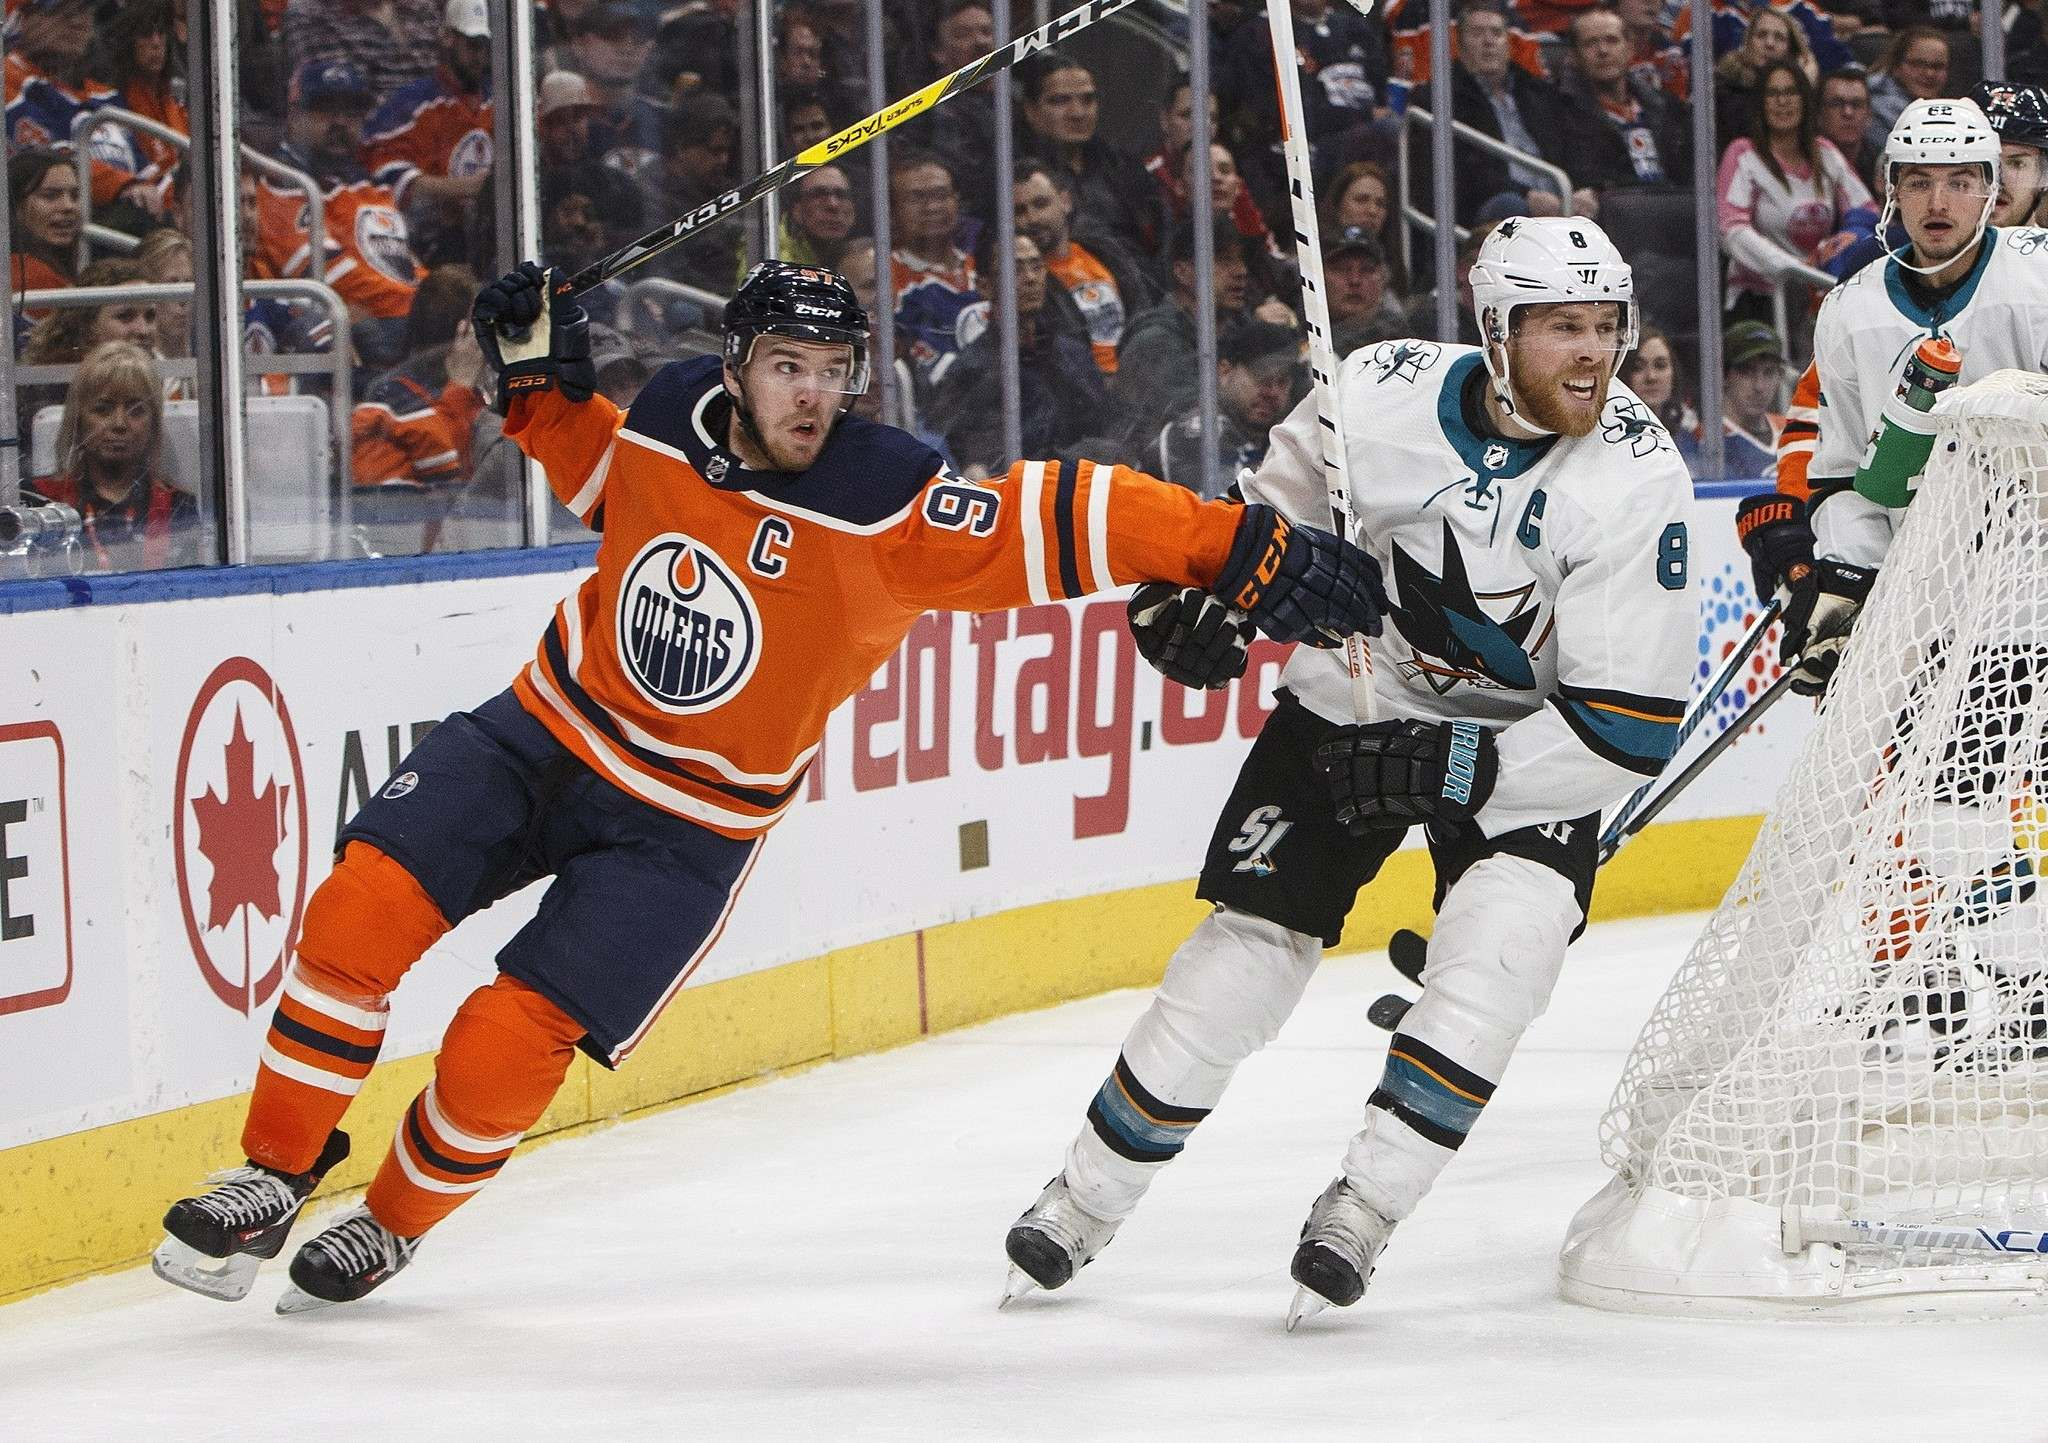 Edmonton Oilers fall short to Jets in first game back from break